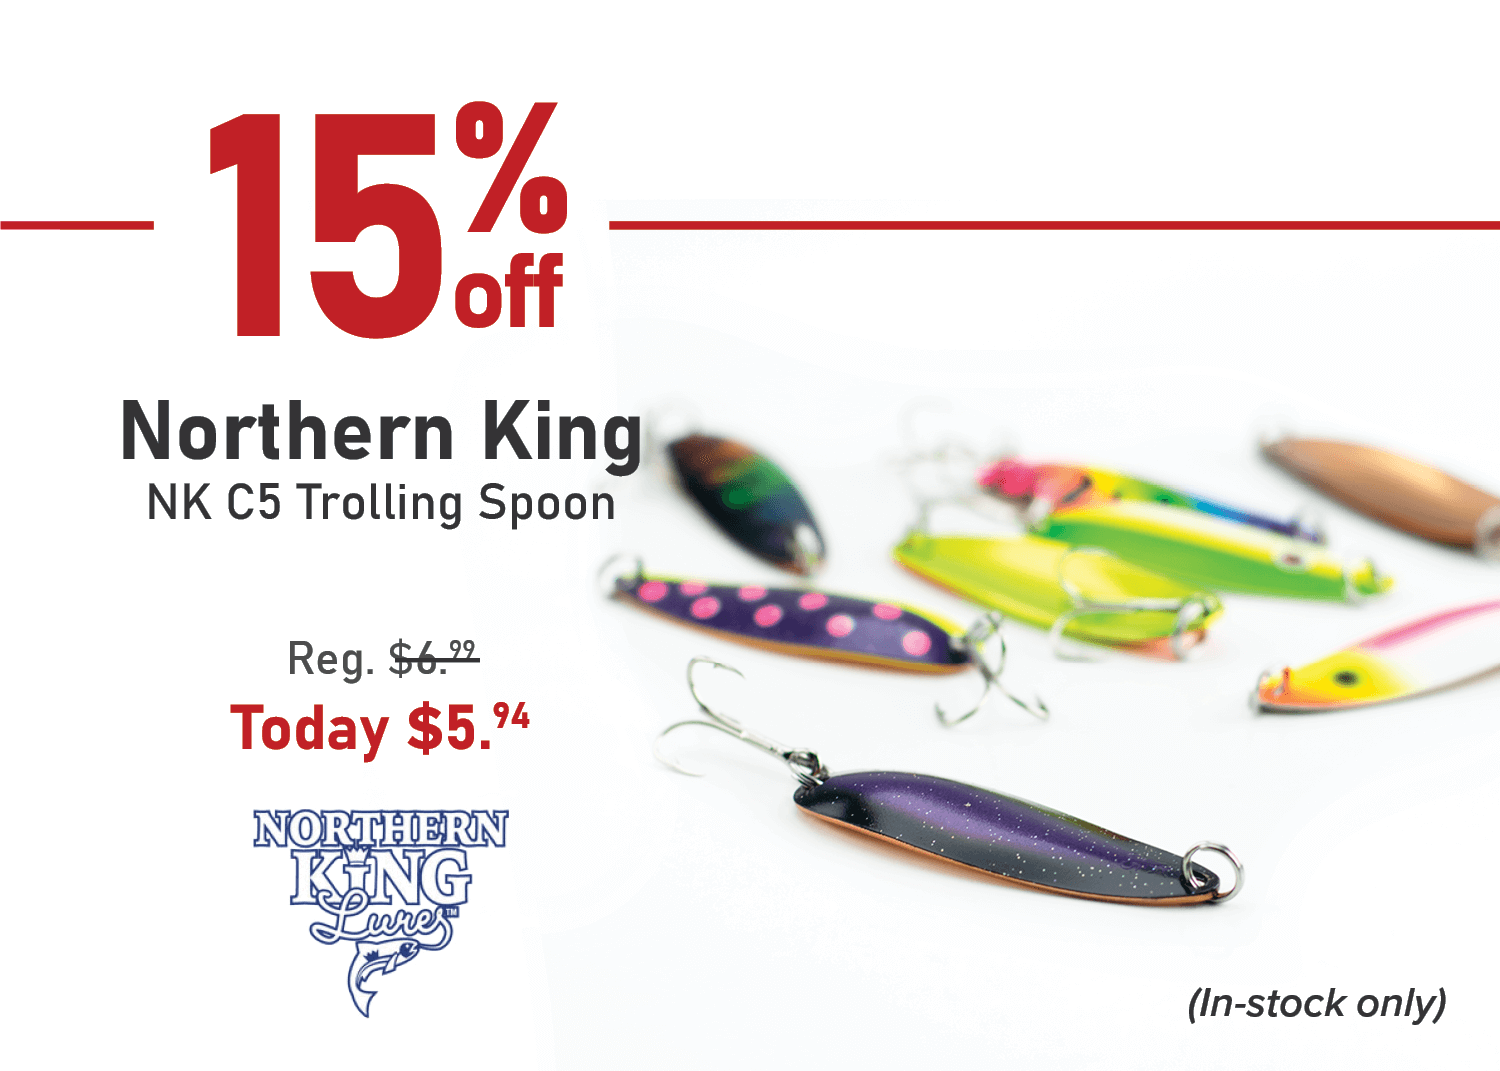 Take 15% off the Northern King NK C5 Trolling Spoon